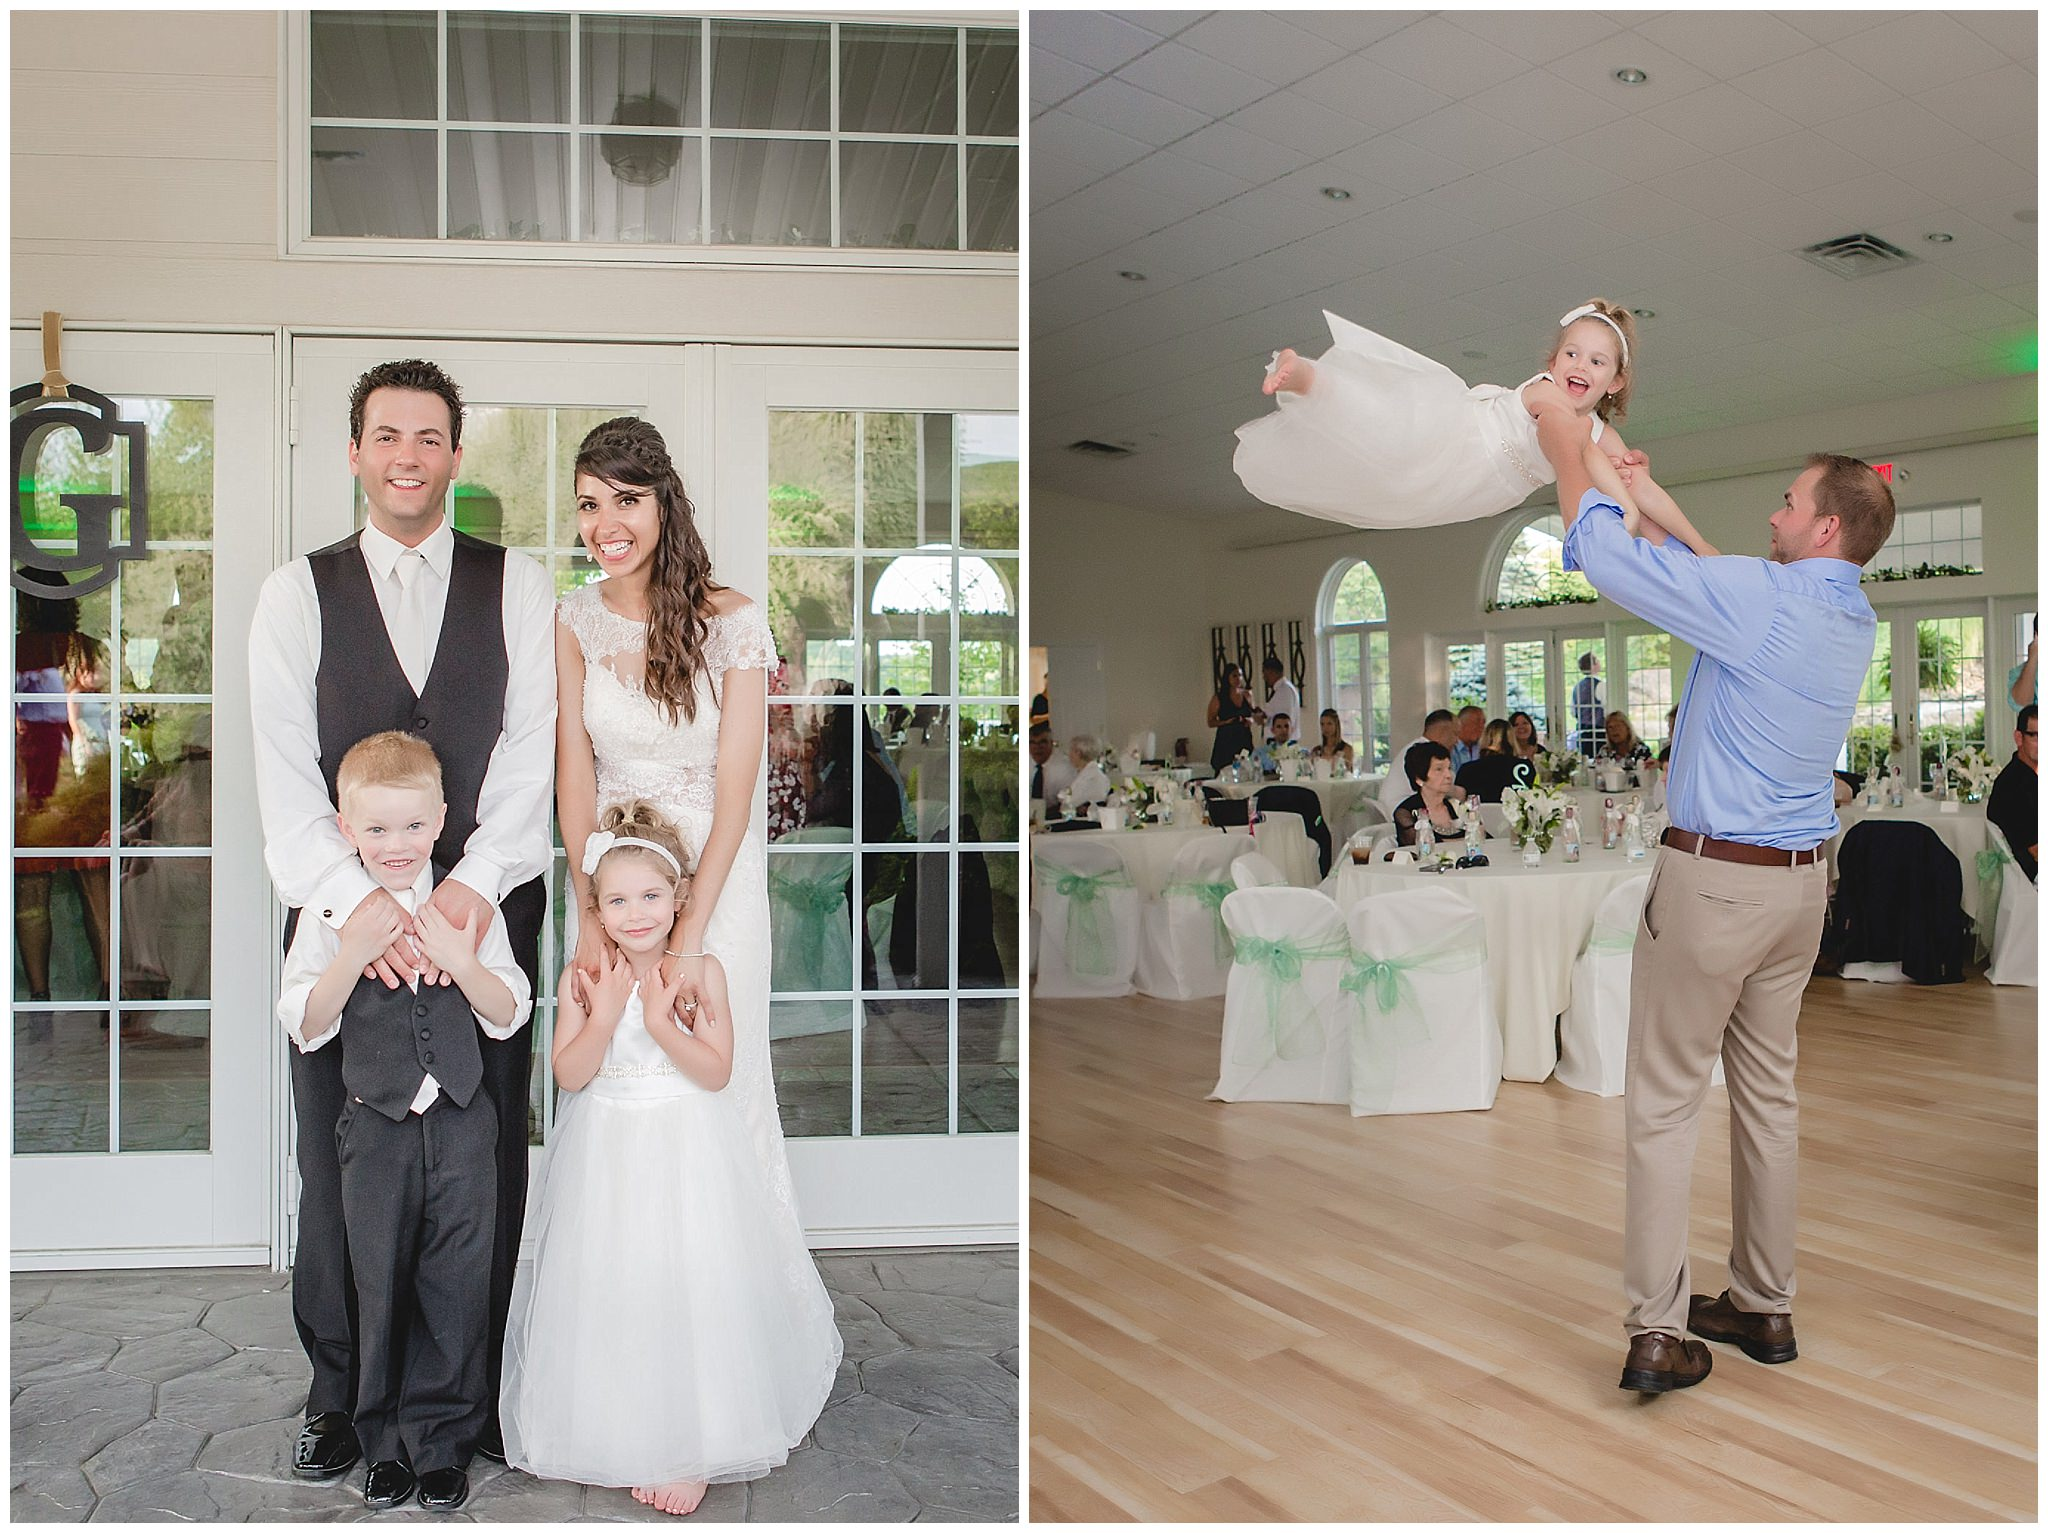 Bride and groom with the flower girl and ring bearer at Greystone Fields